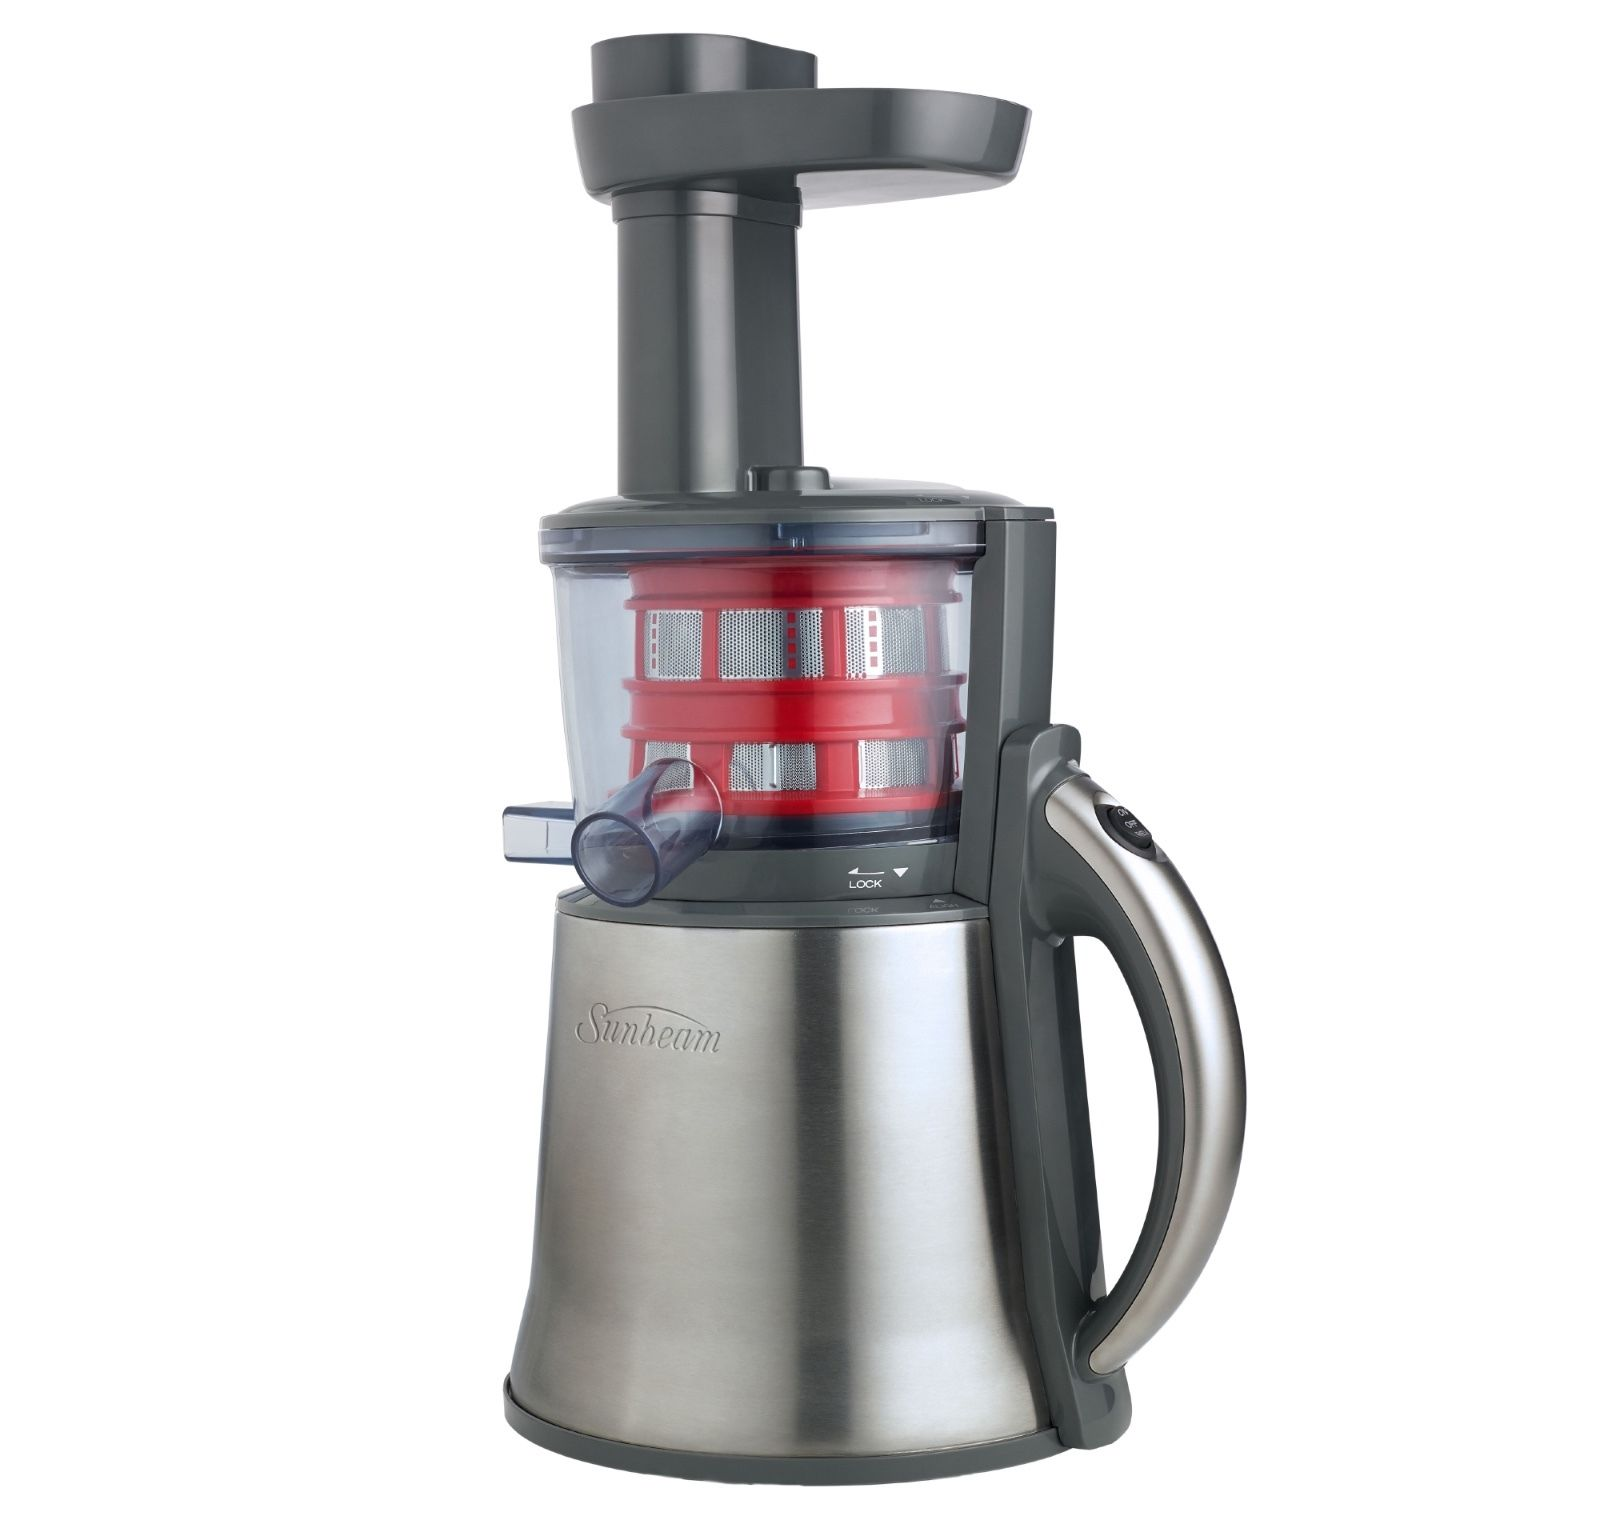 Je9000 Slow Juicer Stainless Steel : Sunbeam JE9000 Slow Juicer eBay